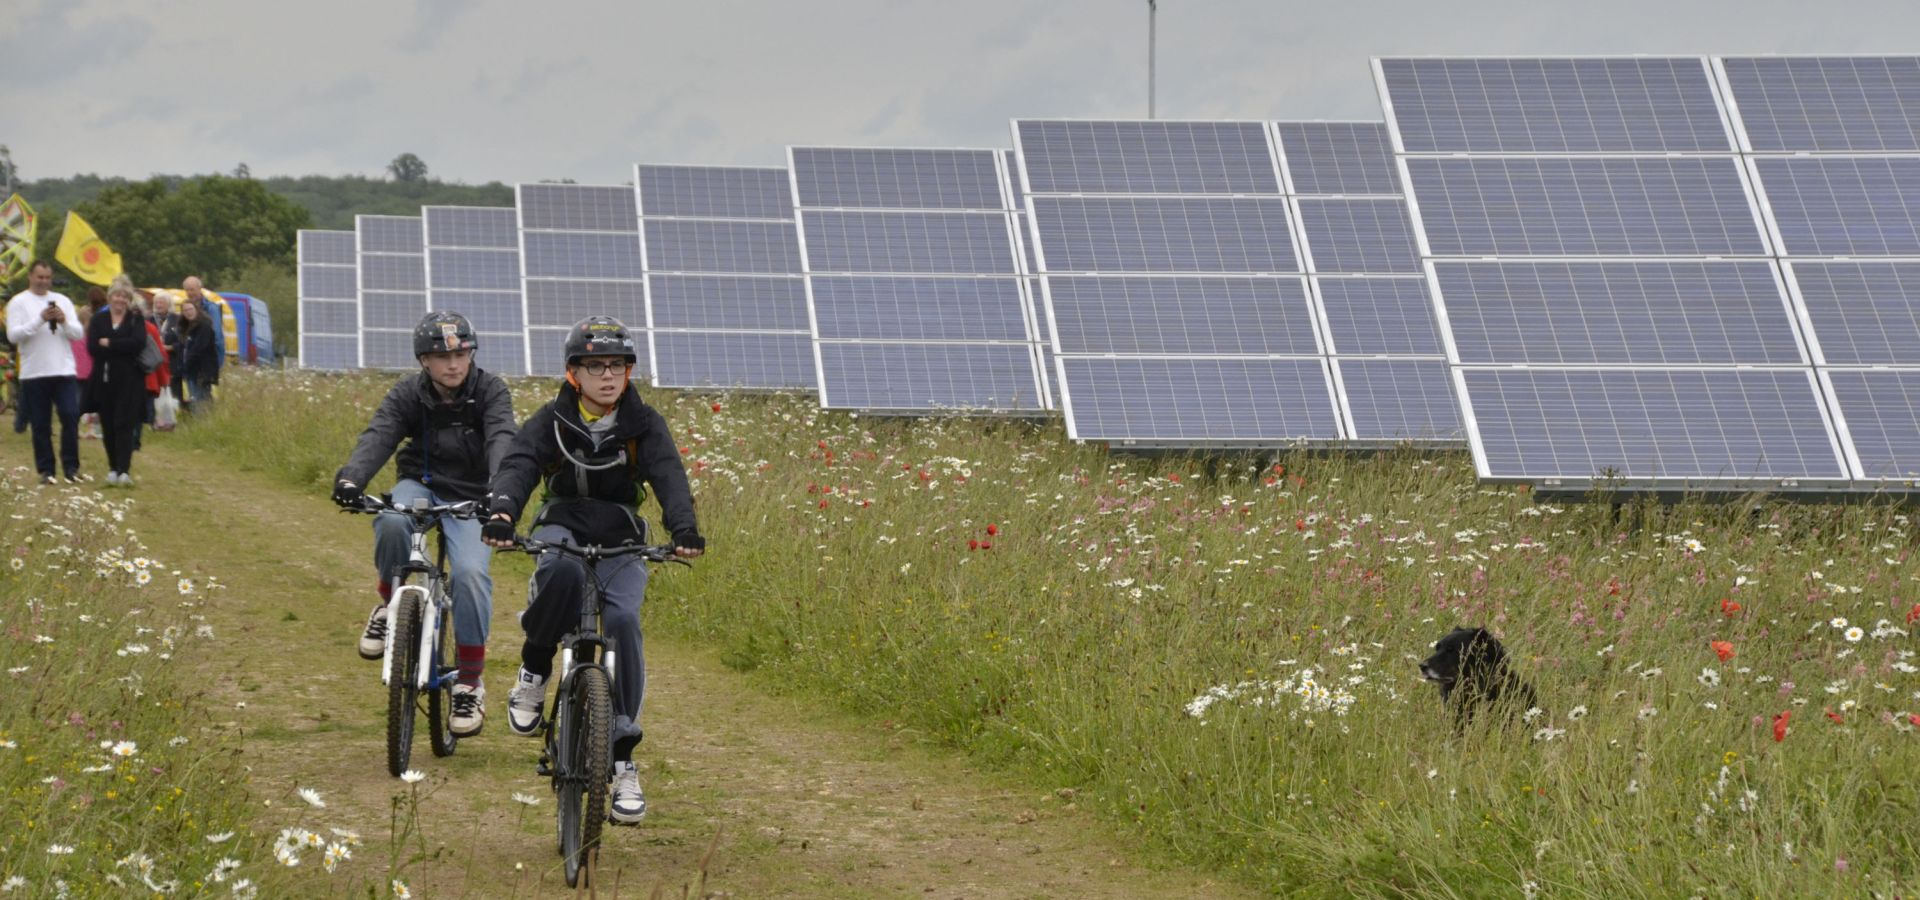 Visitors to the Westmill Solar Cooperative in the UK